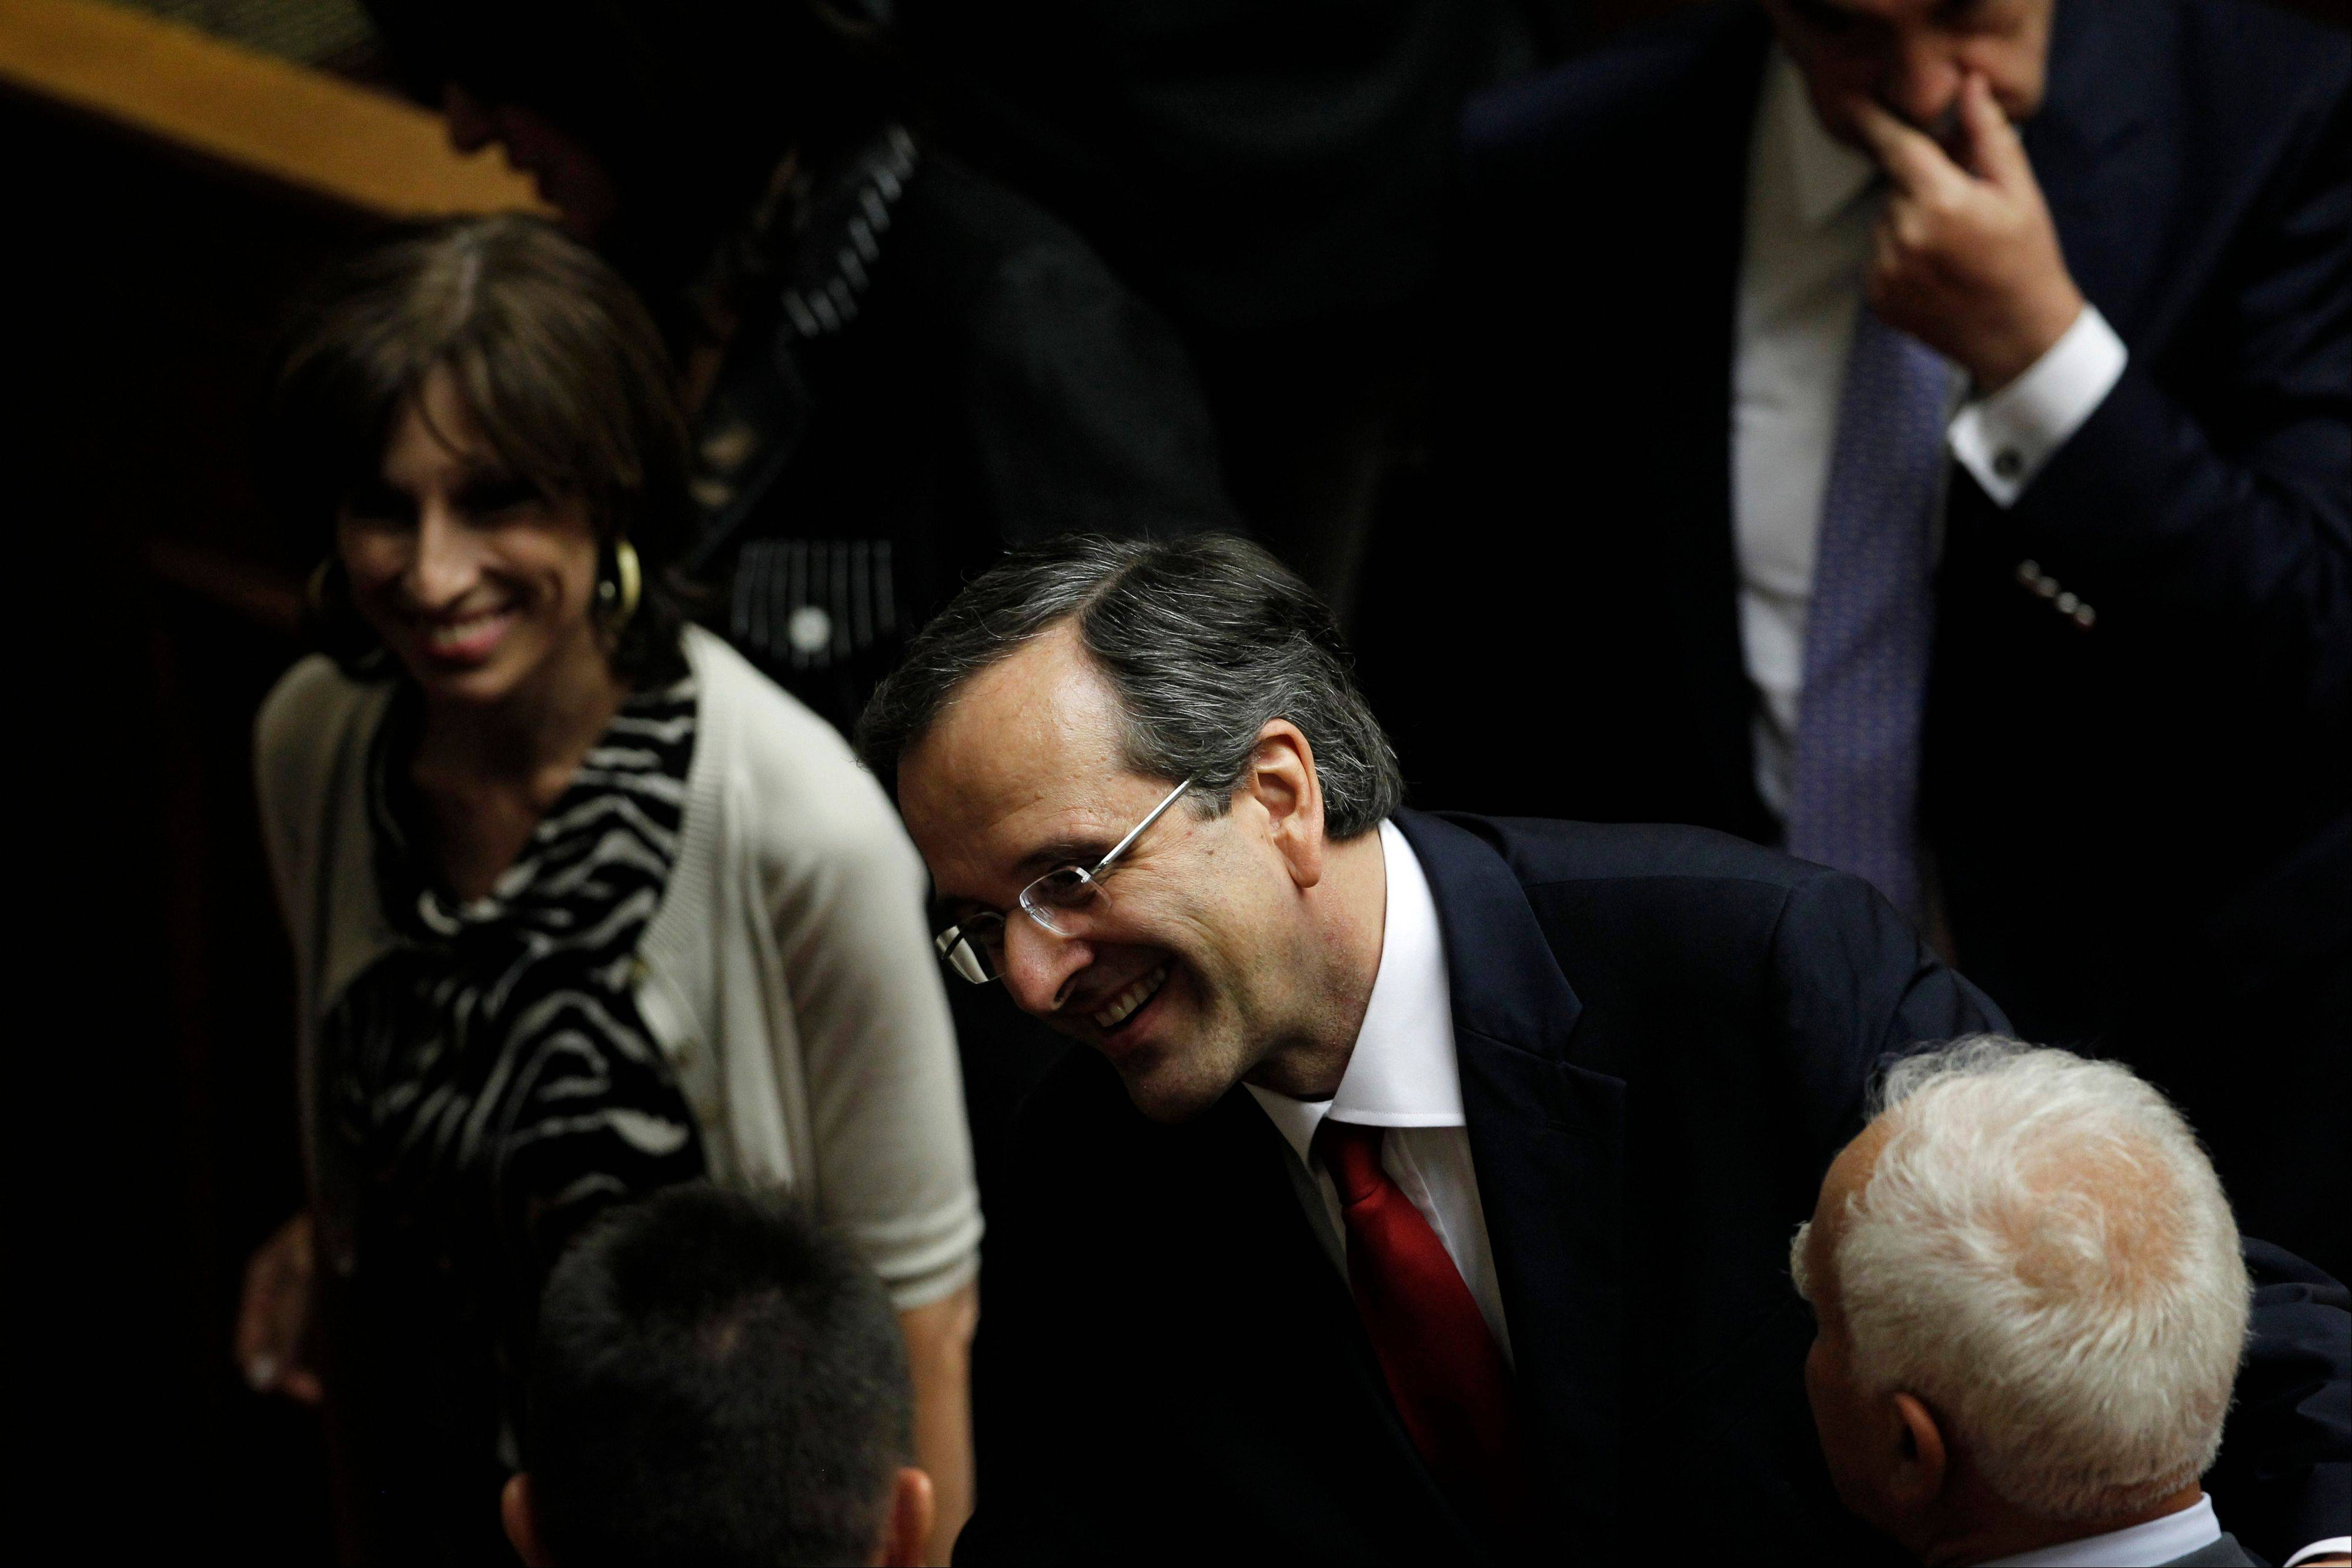 Greek Prime Minister Antonis Samaras is congratulated by lawmakers at Parliament after winning a vote of confidence in Athens, Greece, late Sunday.